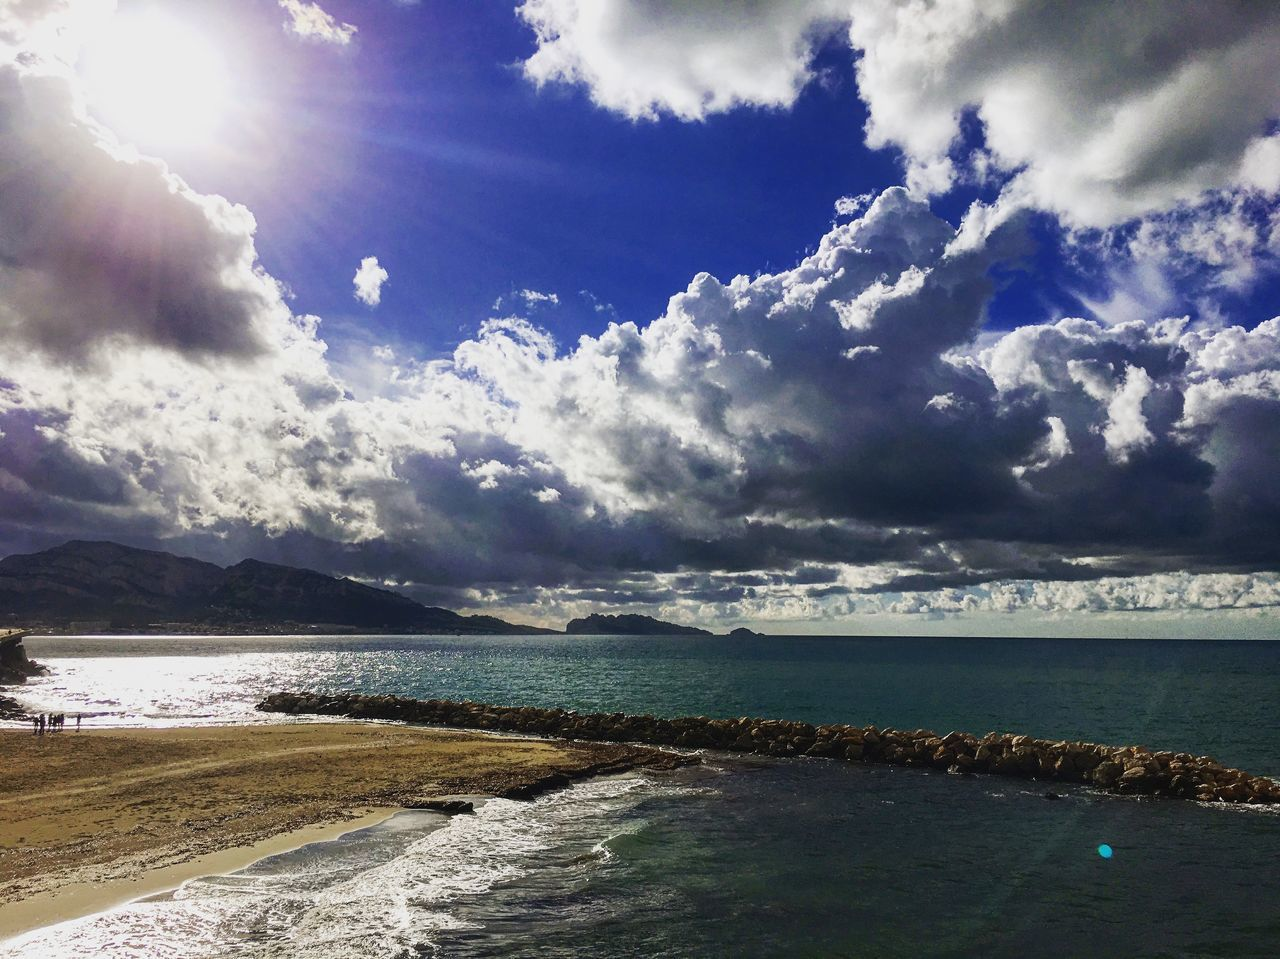 sky, beauty in nature, cloud - sky, water, scenics, nature, sea, tranquility, tranquil scene, sunlight, outdoors, no people, day